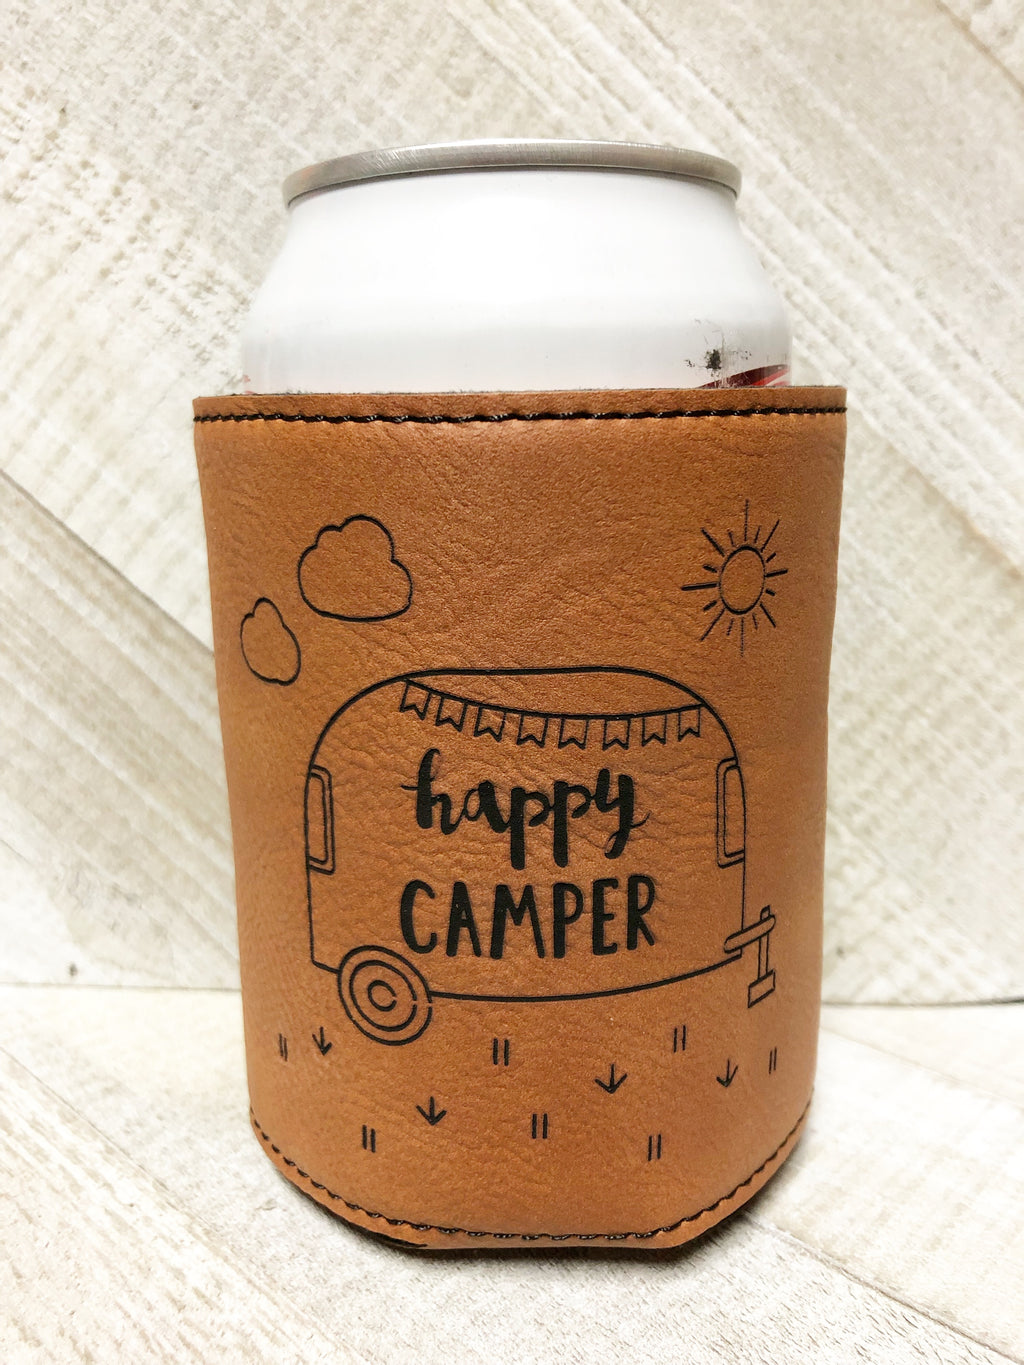 Engraved Beverage Koozie Holder- Happy Camper Dark Brown